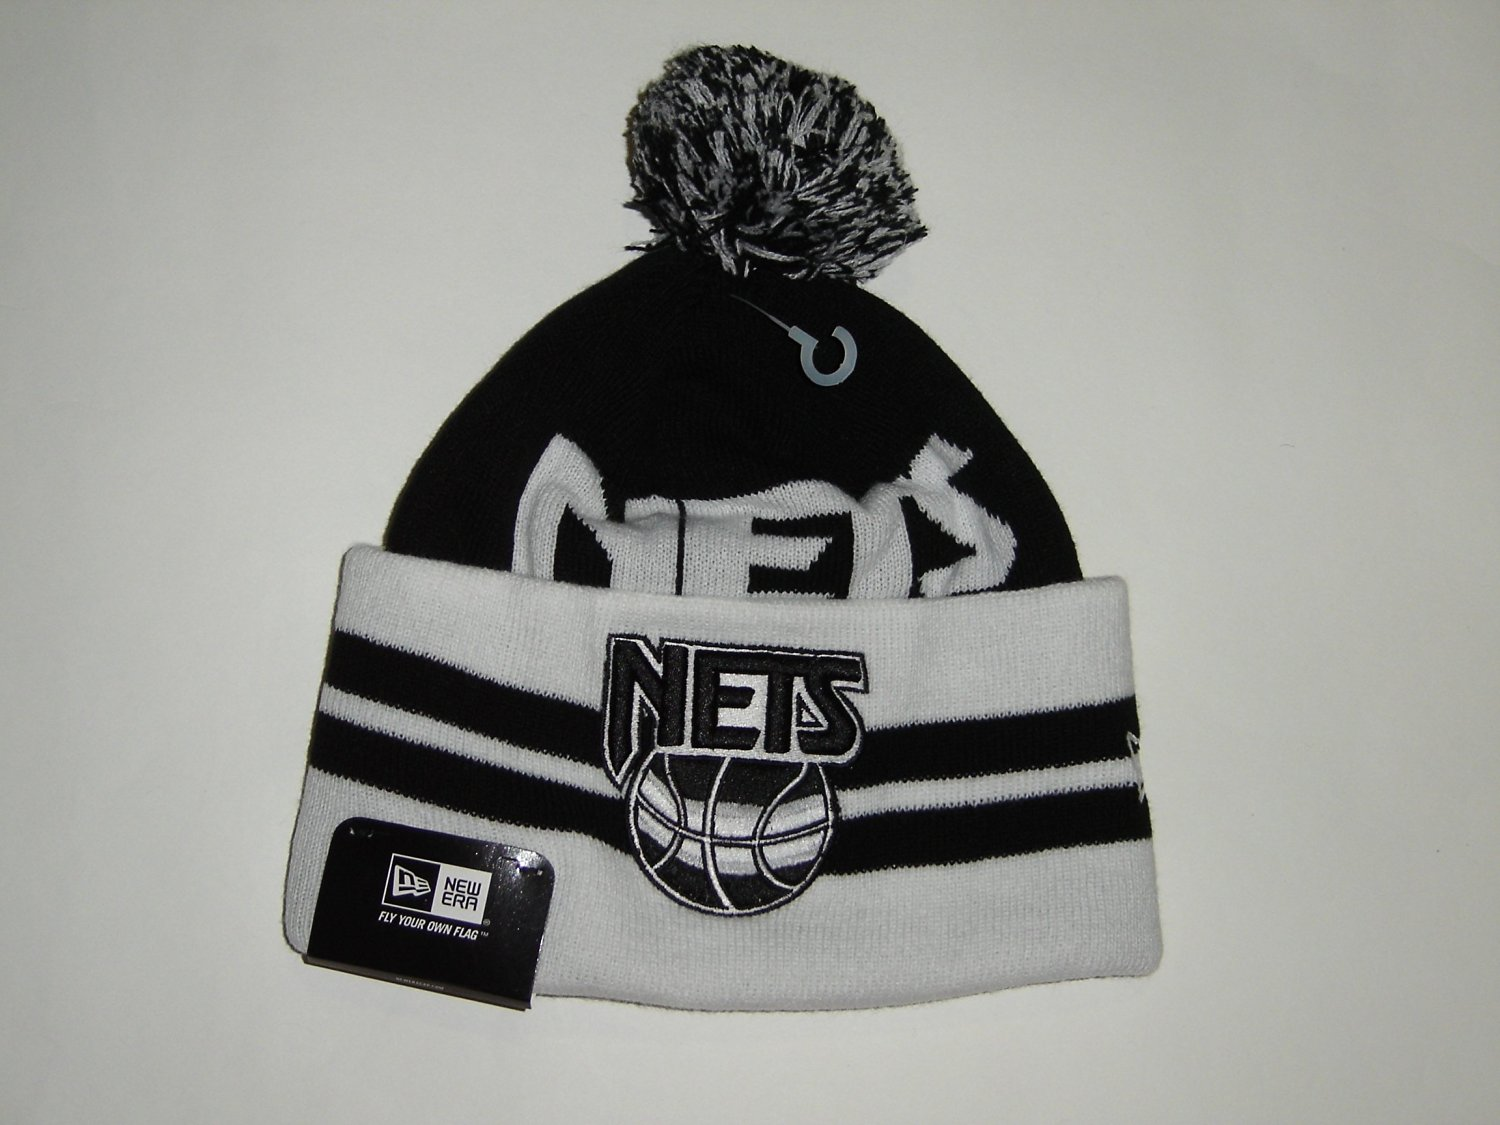 Get Quotations · New Era NBA Brooklyn Nets Wide Top Cuffed Knit Pom Beanie  Hats 1d941a1f6ce